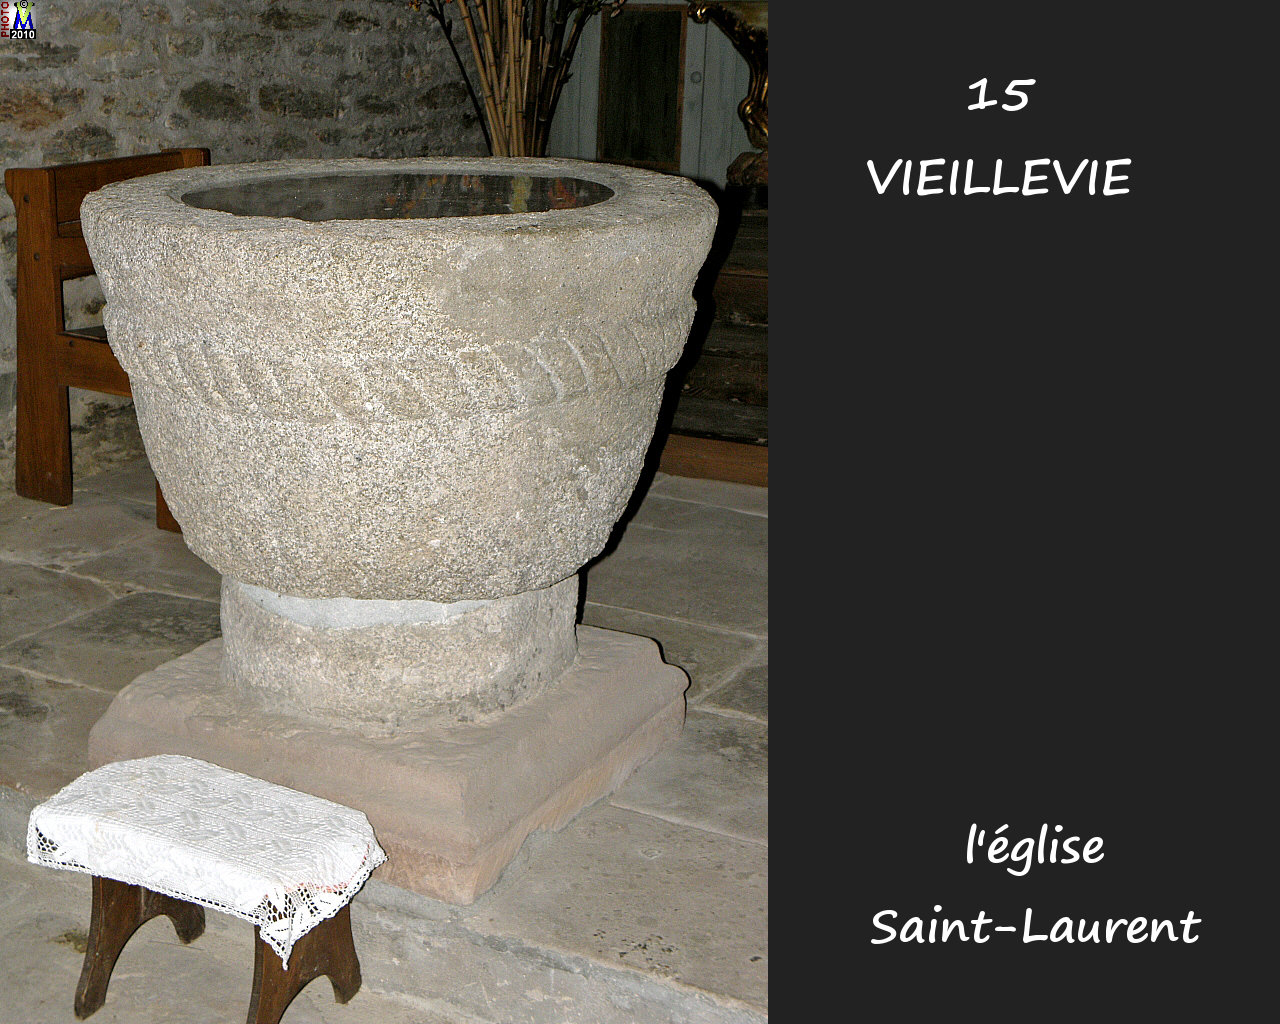 15VIEILLEVIE_eglise_250.jpg